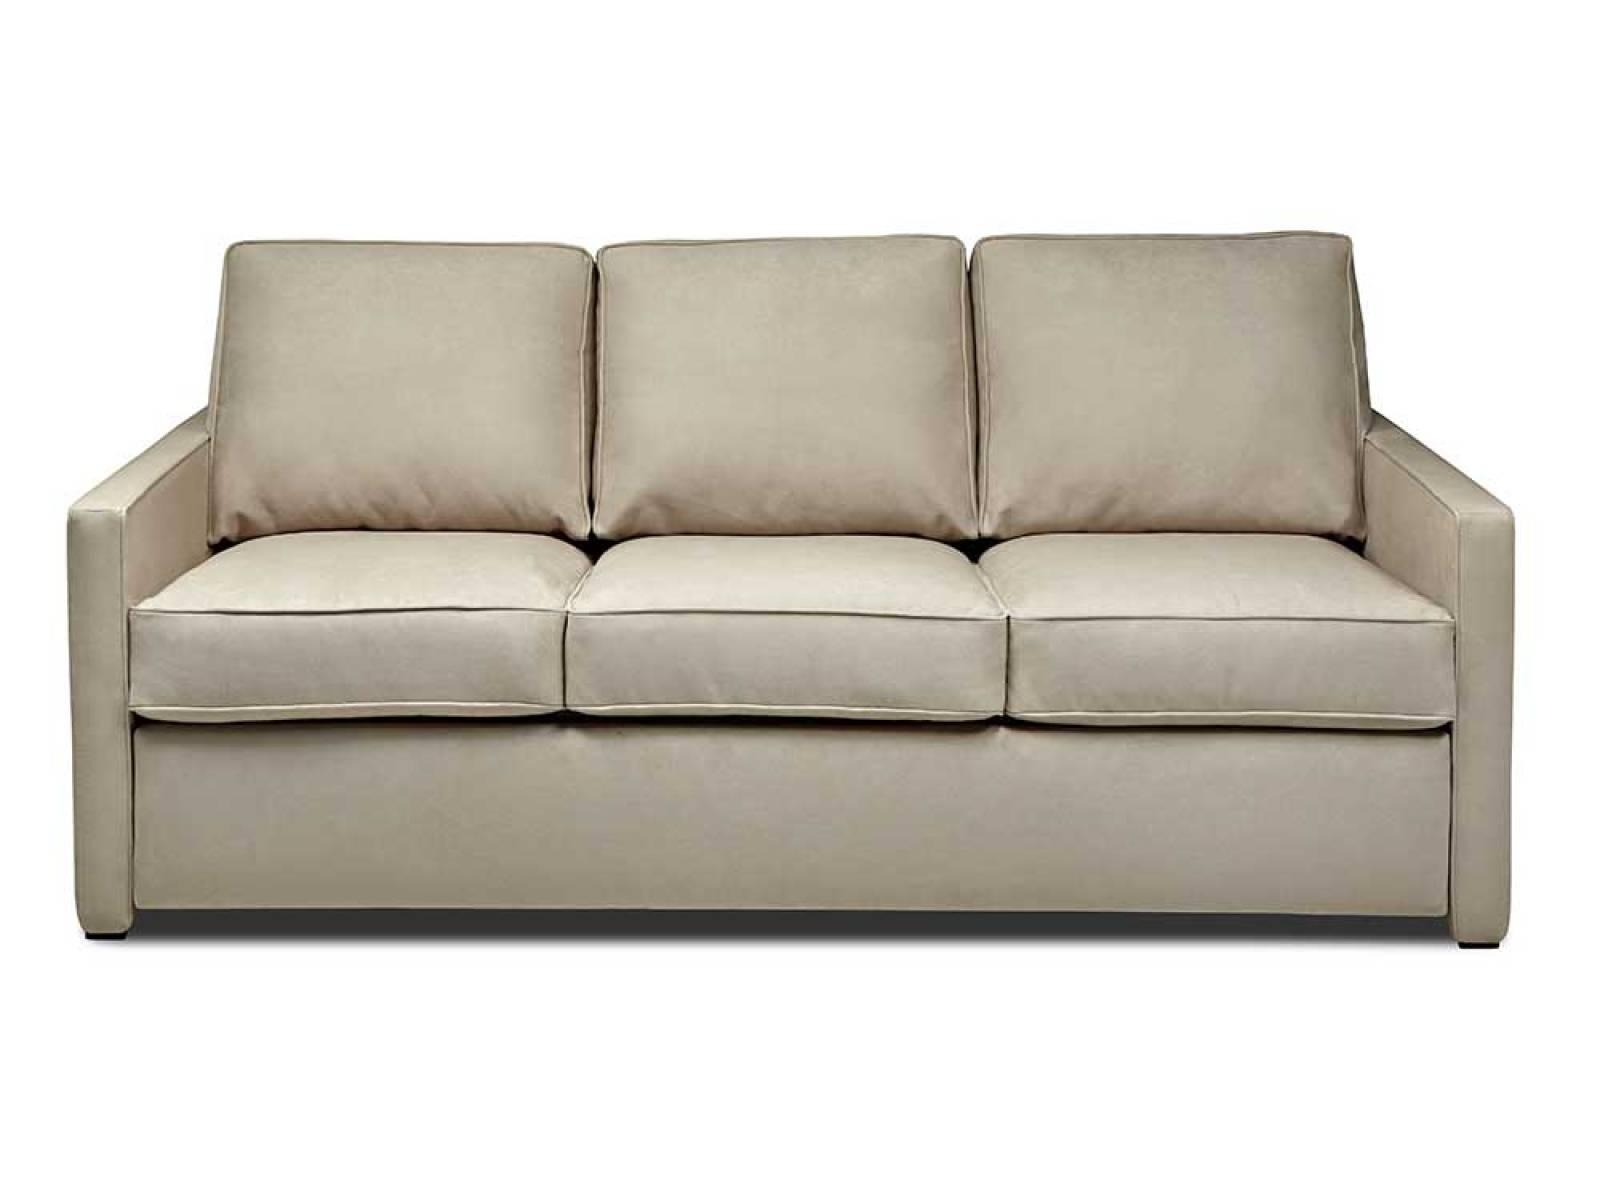 ▻ Sofa : 16 Scenic Lovely Round Sofa Able Transform Big Rounded Within Rounded Sofa (Image 1 of 20)